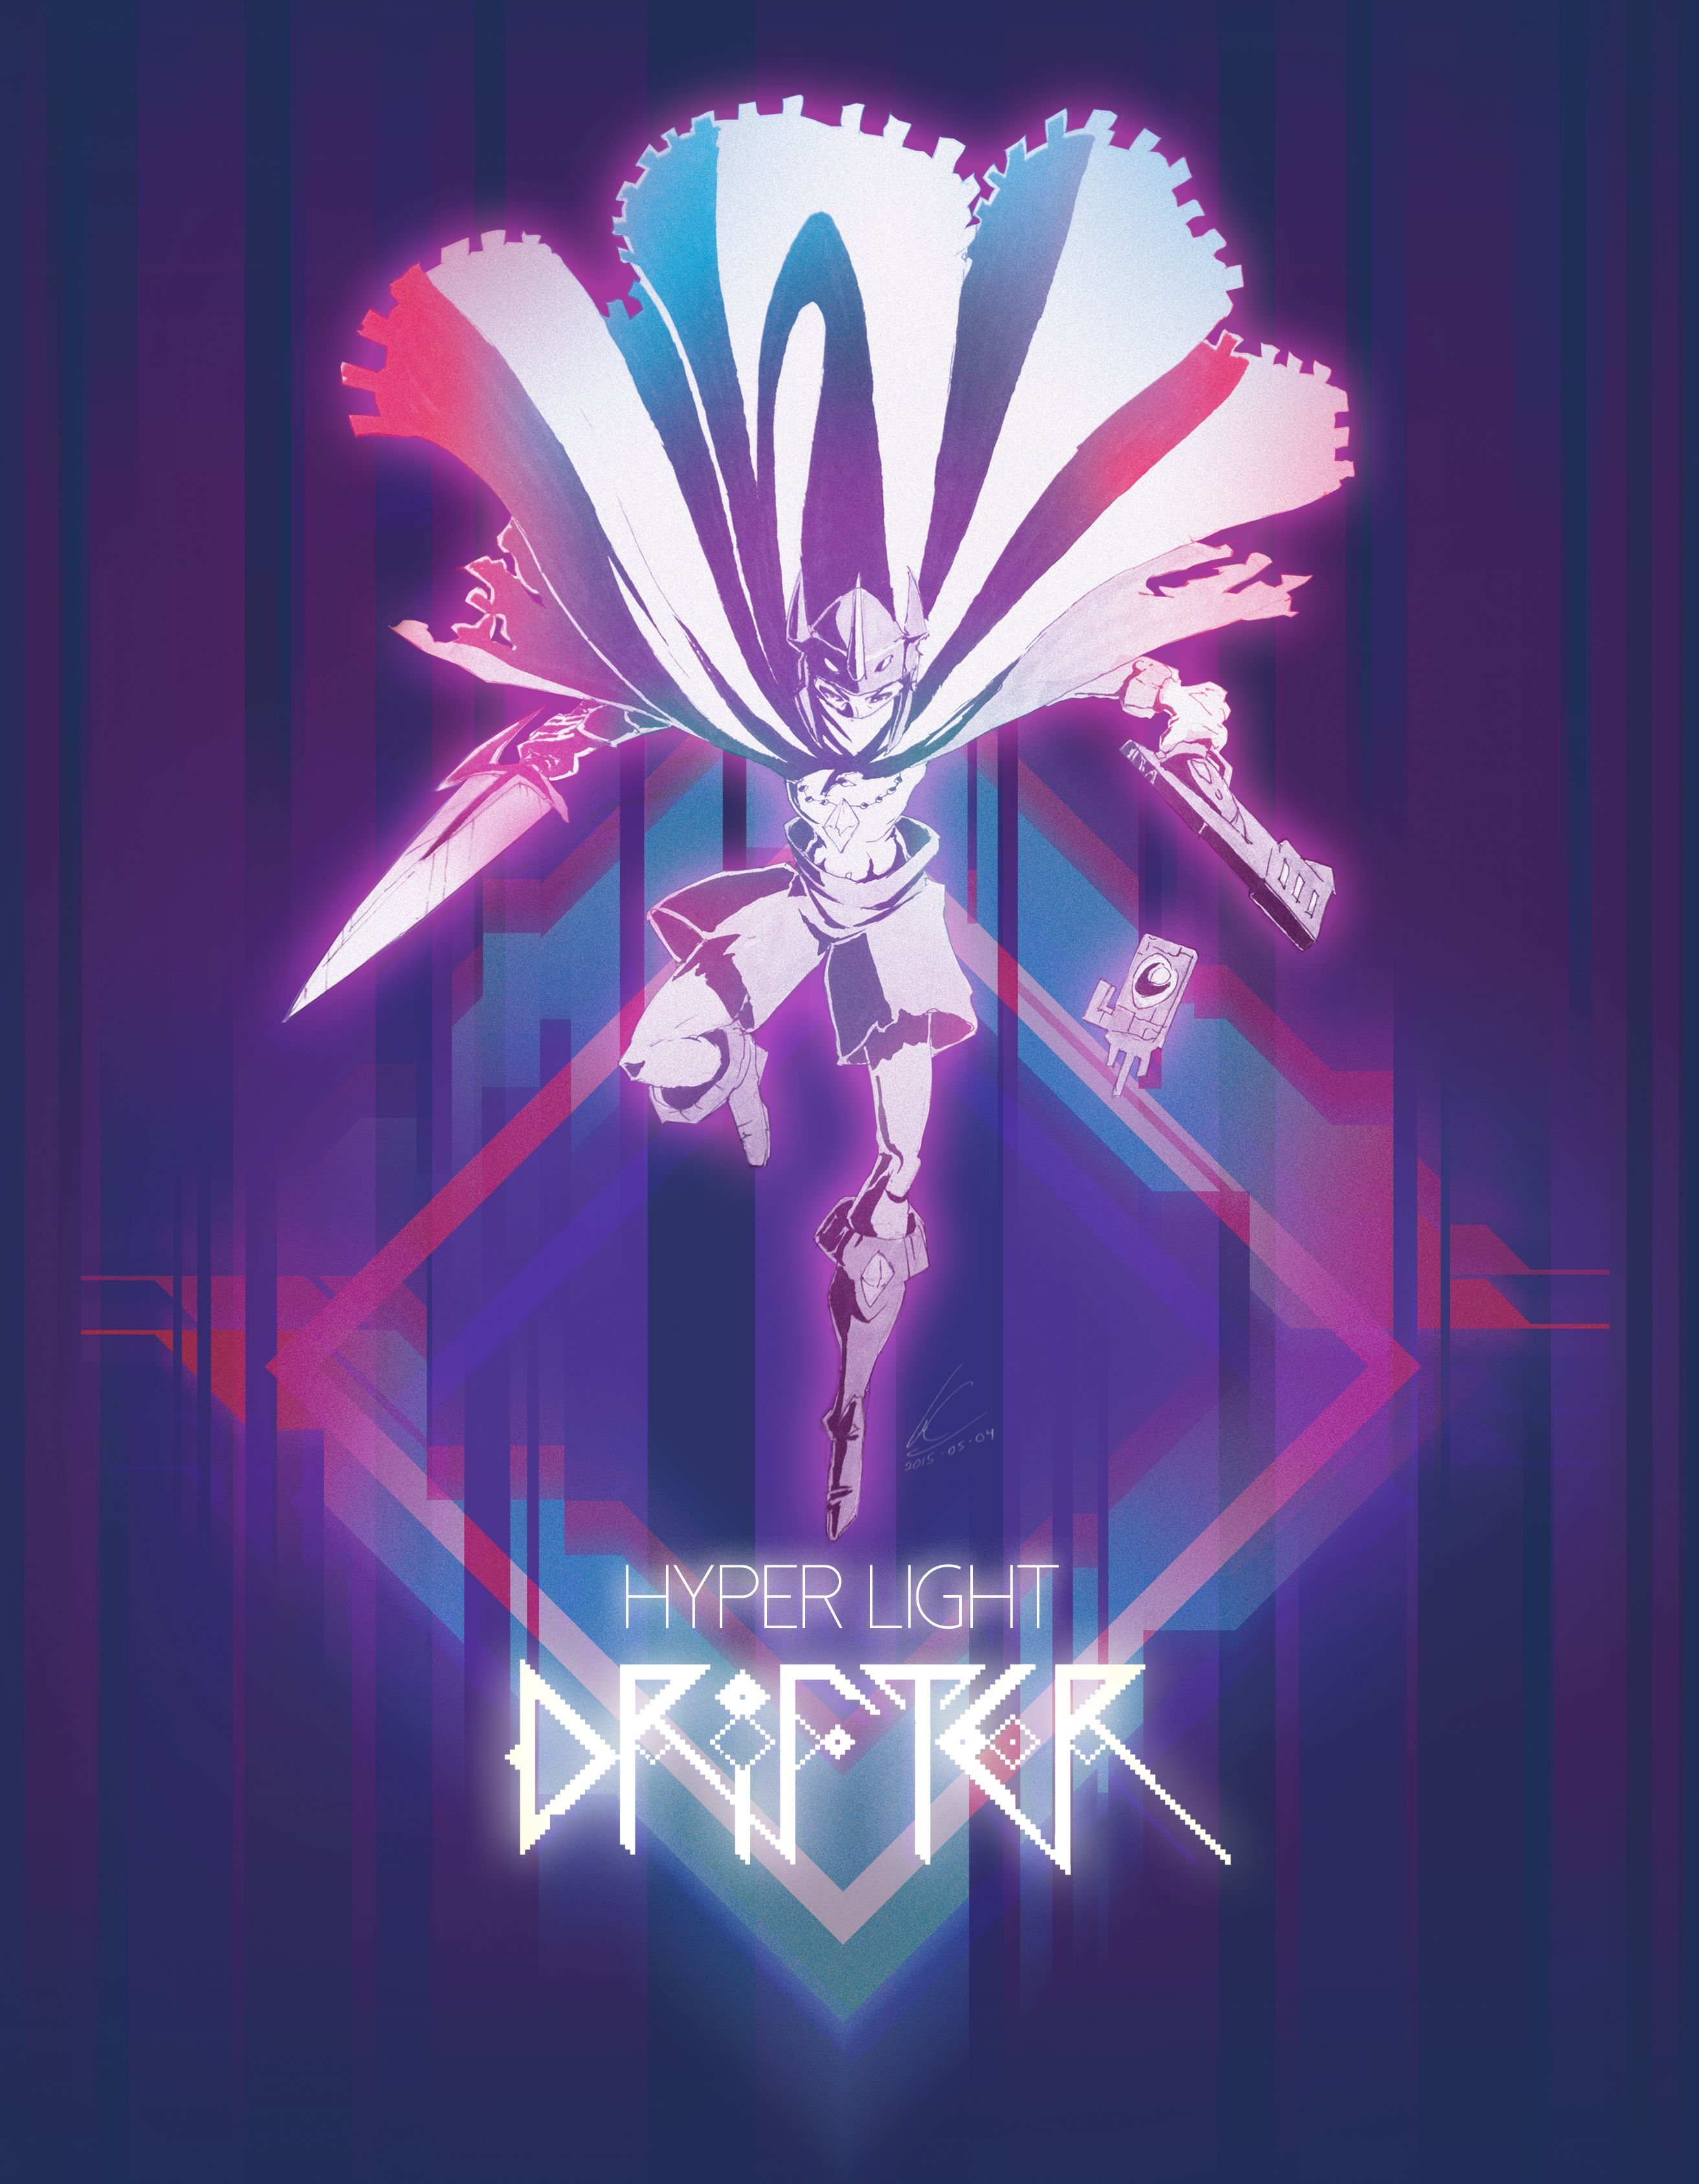 Hyperlightdrifter Deviantart Hyper Light Drifter Wallpaper Indie Game Art Drifter